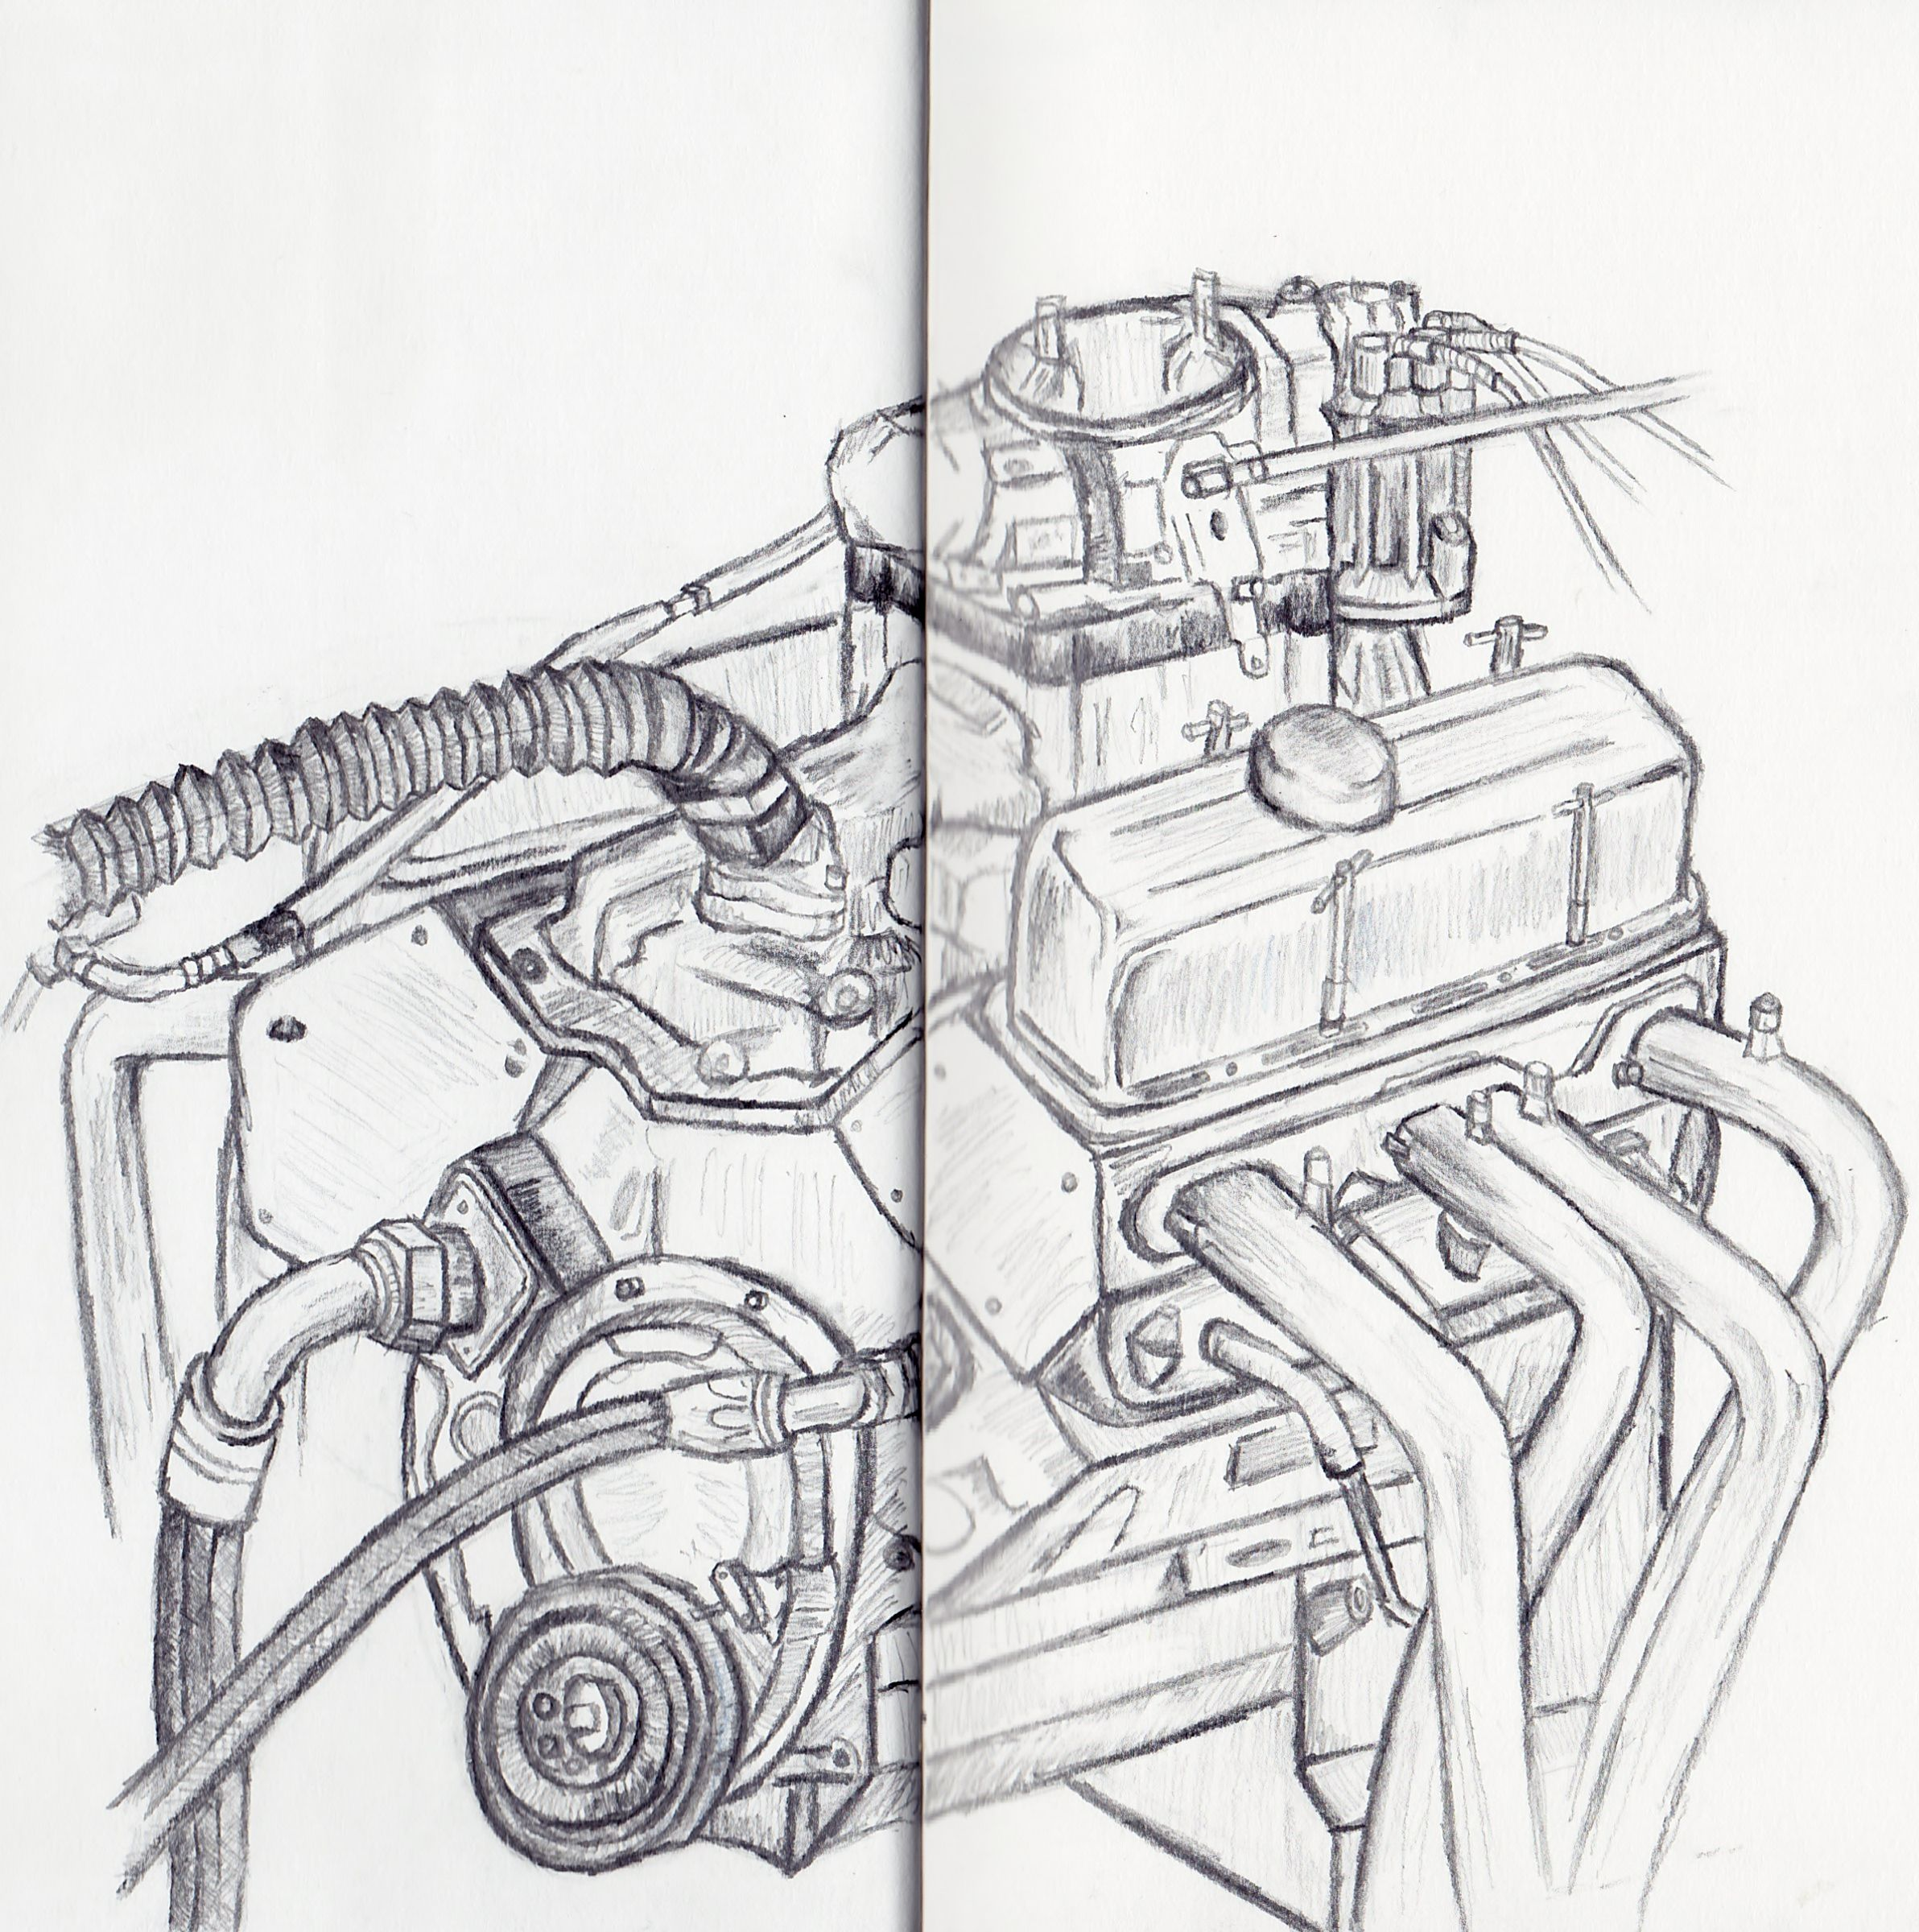 pin by dan geraghty on cars drawings drawings pinterest engineering Red Convertible drawings pinterest 12th july summer work car engine engineering technology